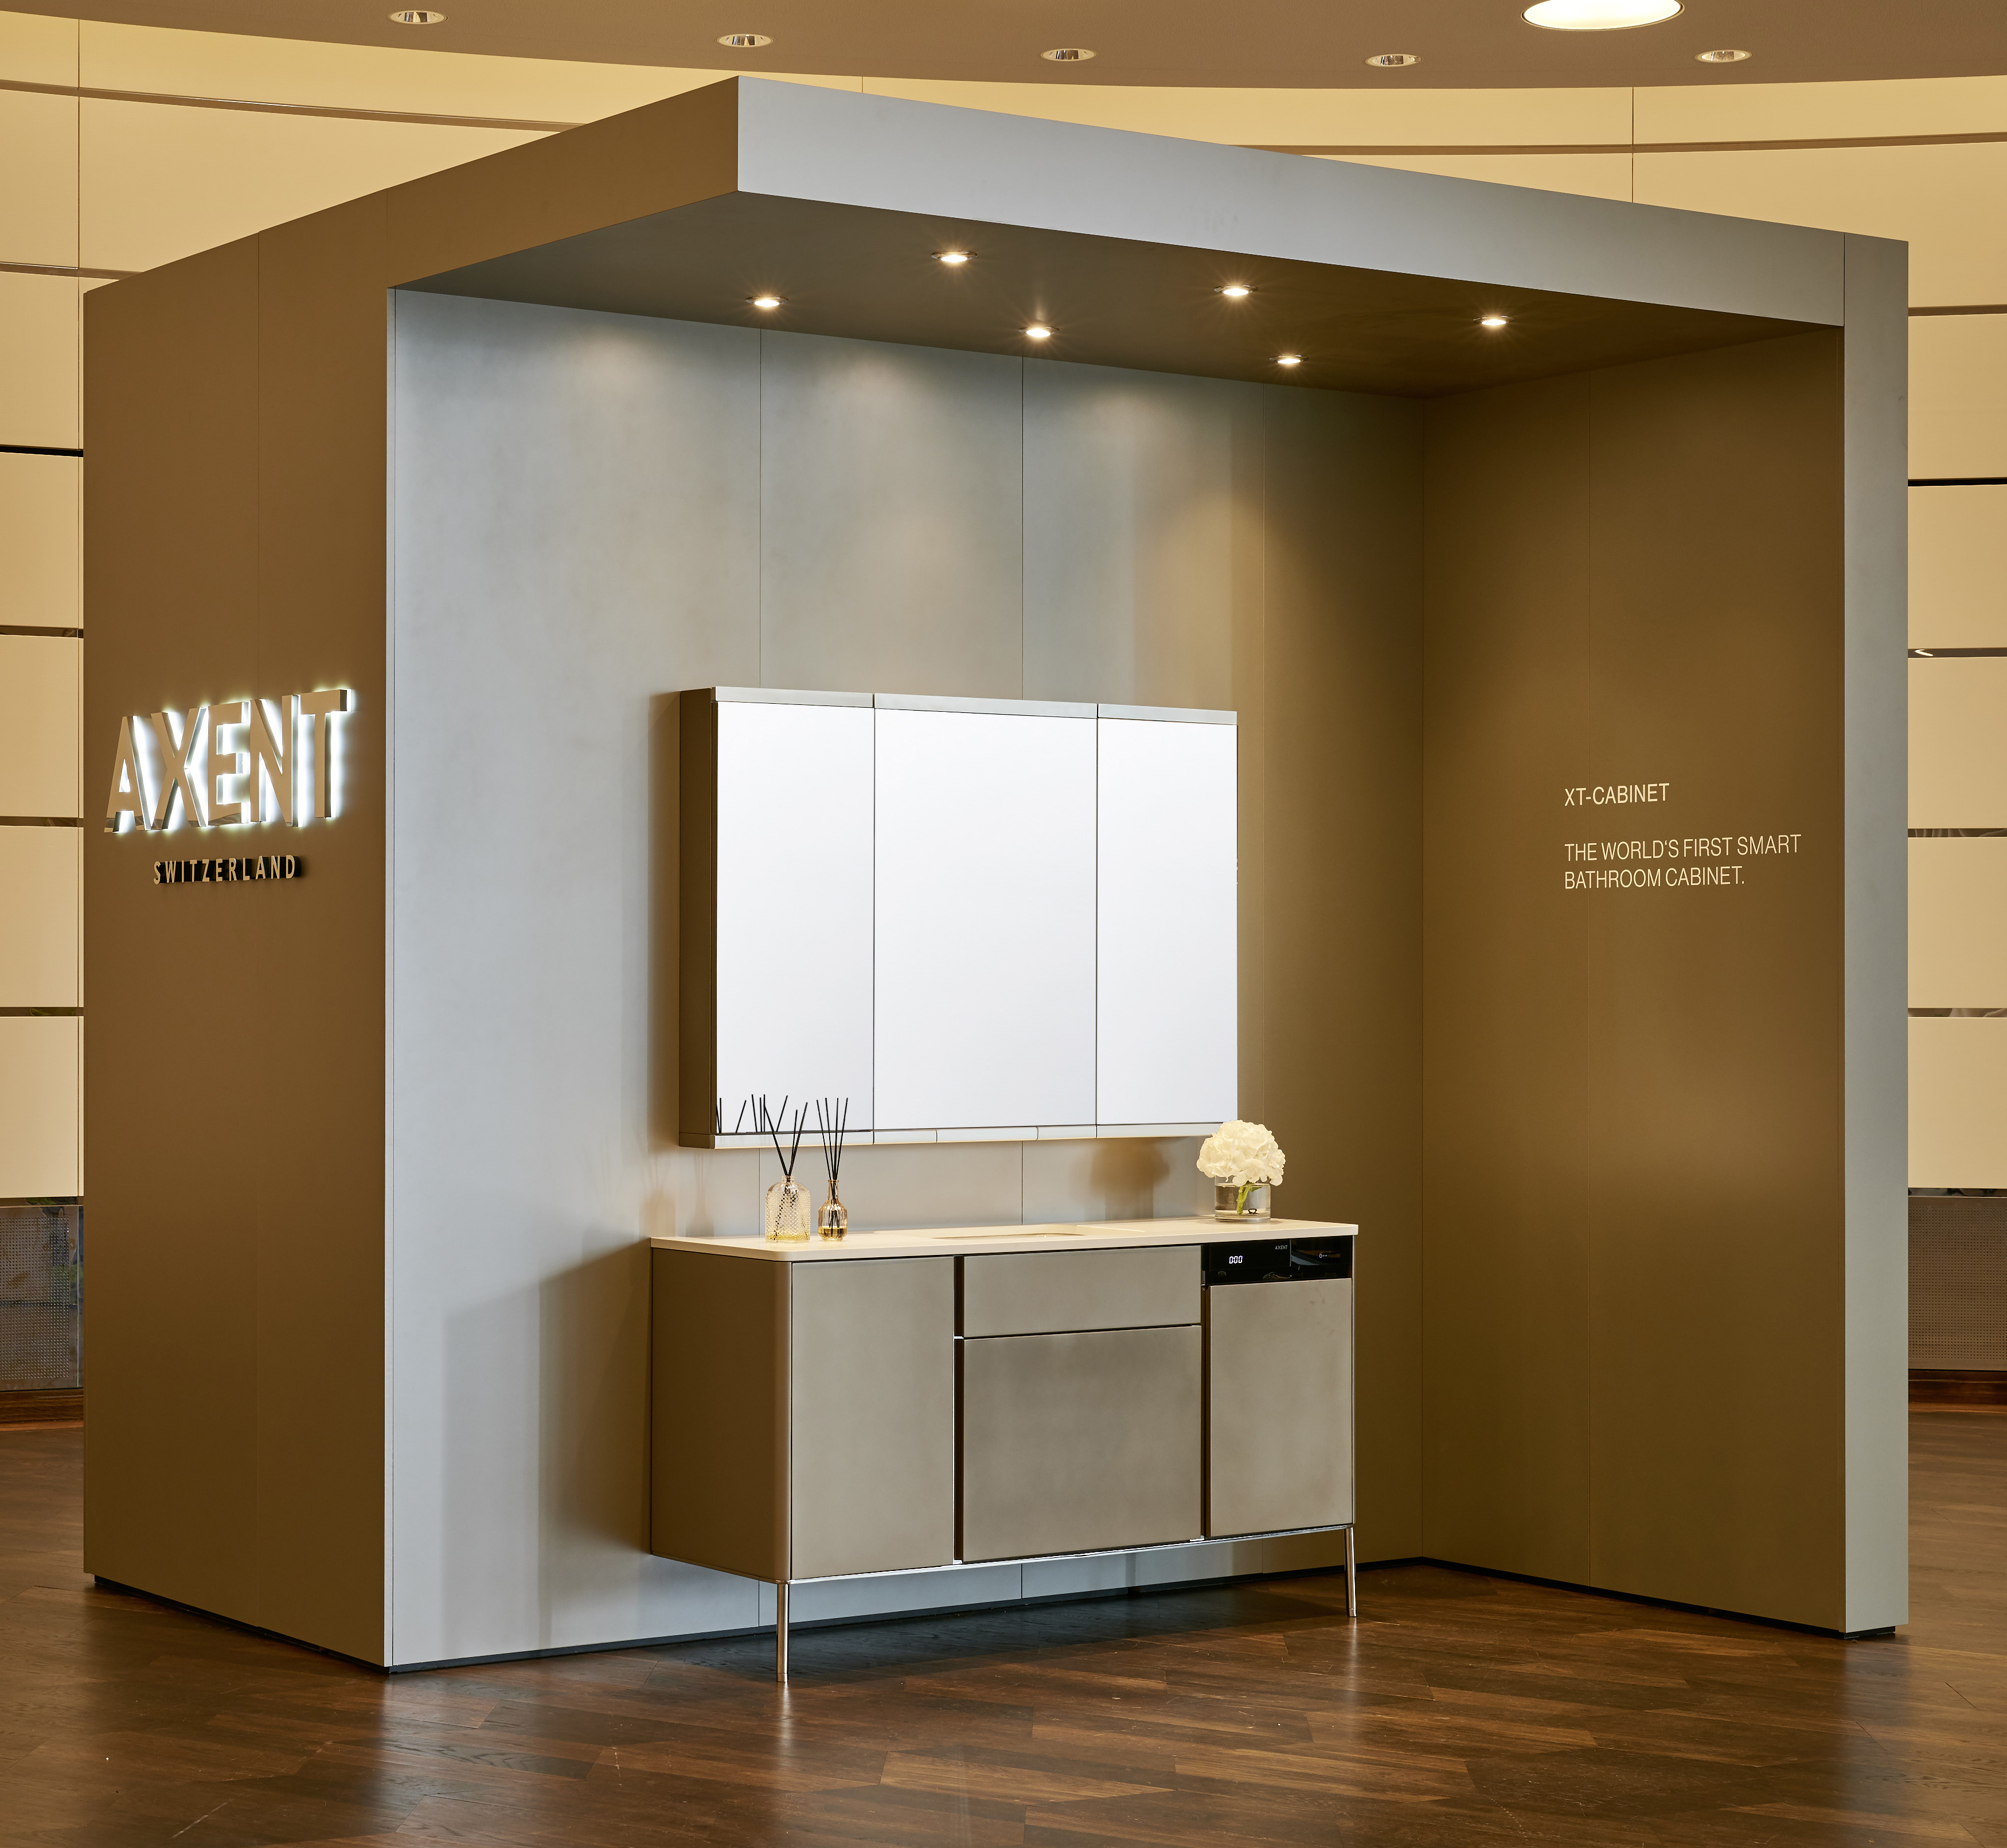 Celebrating 10 Years future bathroom with AXENT Switzerland | AXENT